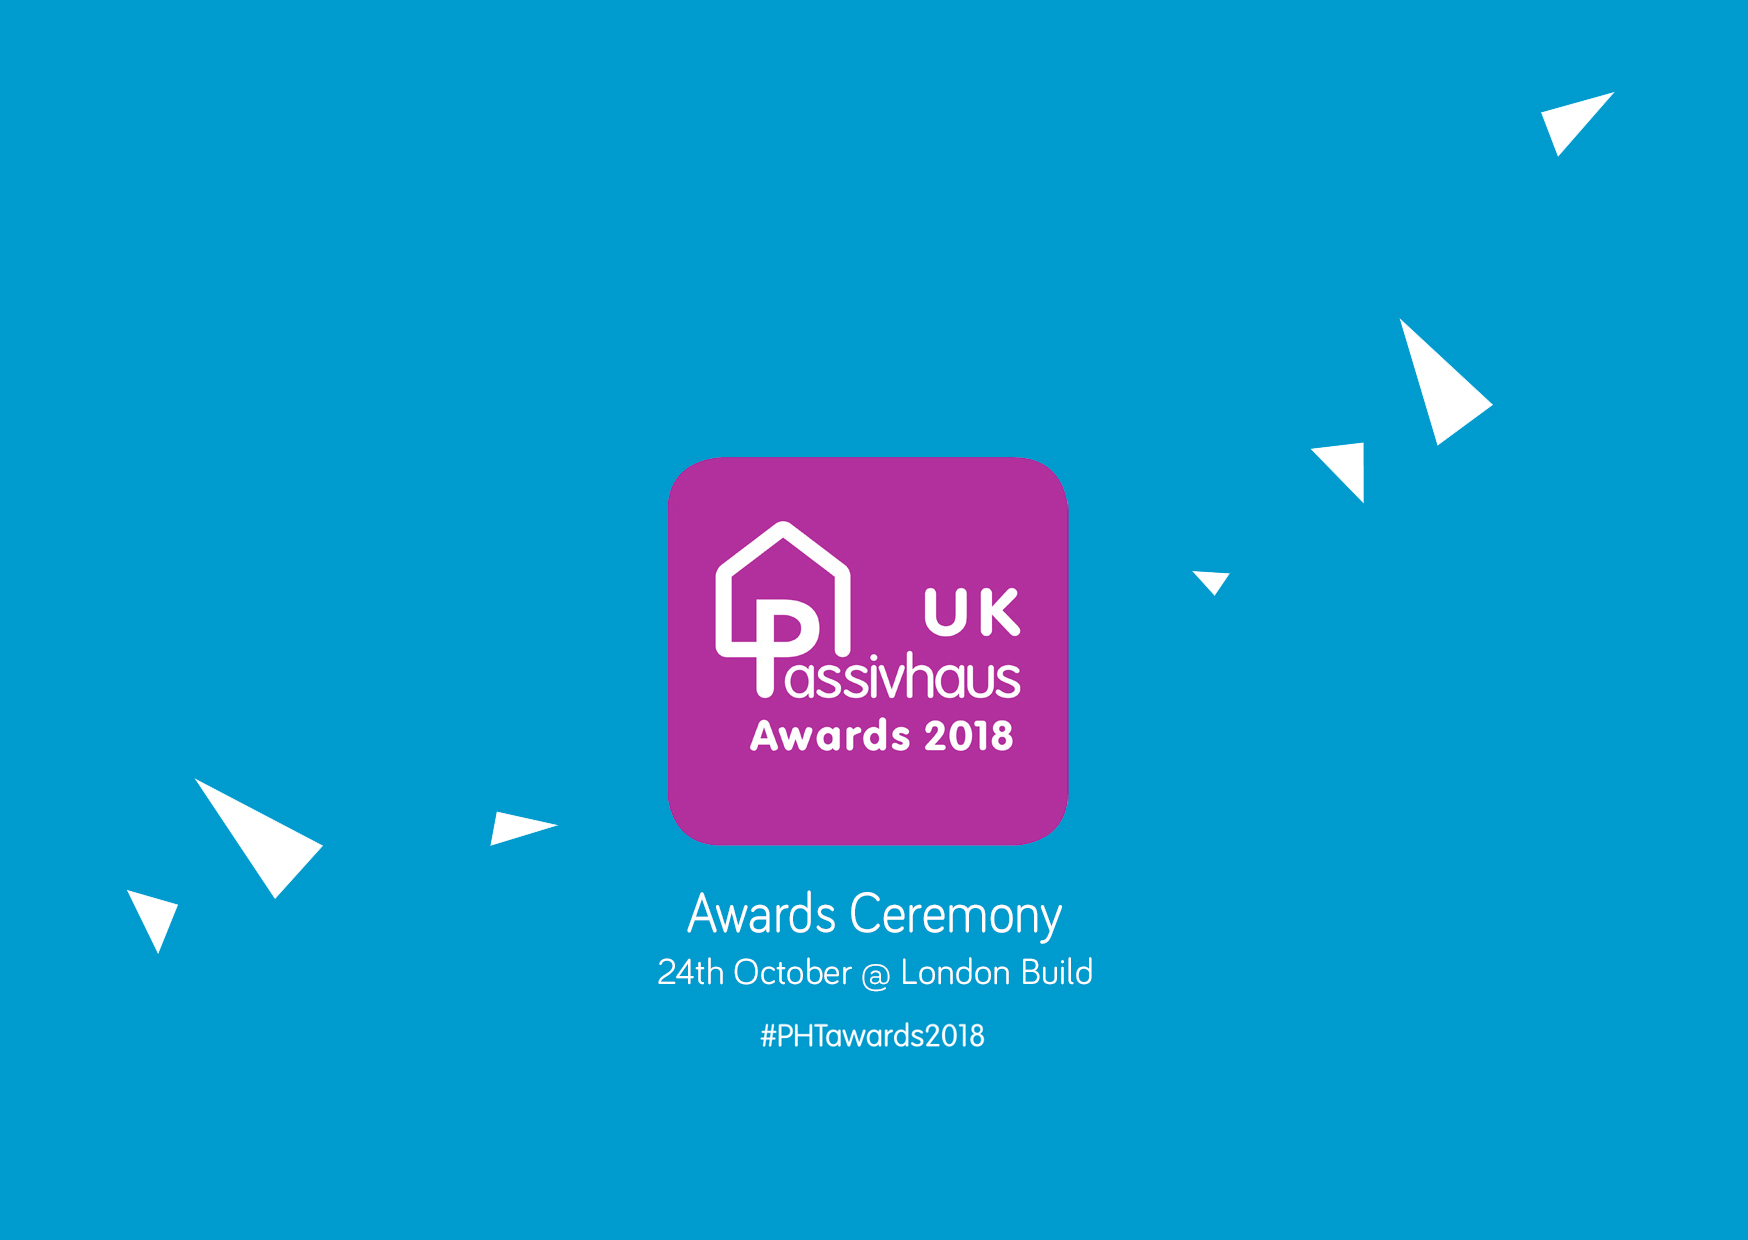 2018 UK Passivhaus Awards Ceremony at London Build - 24th October